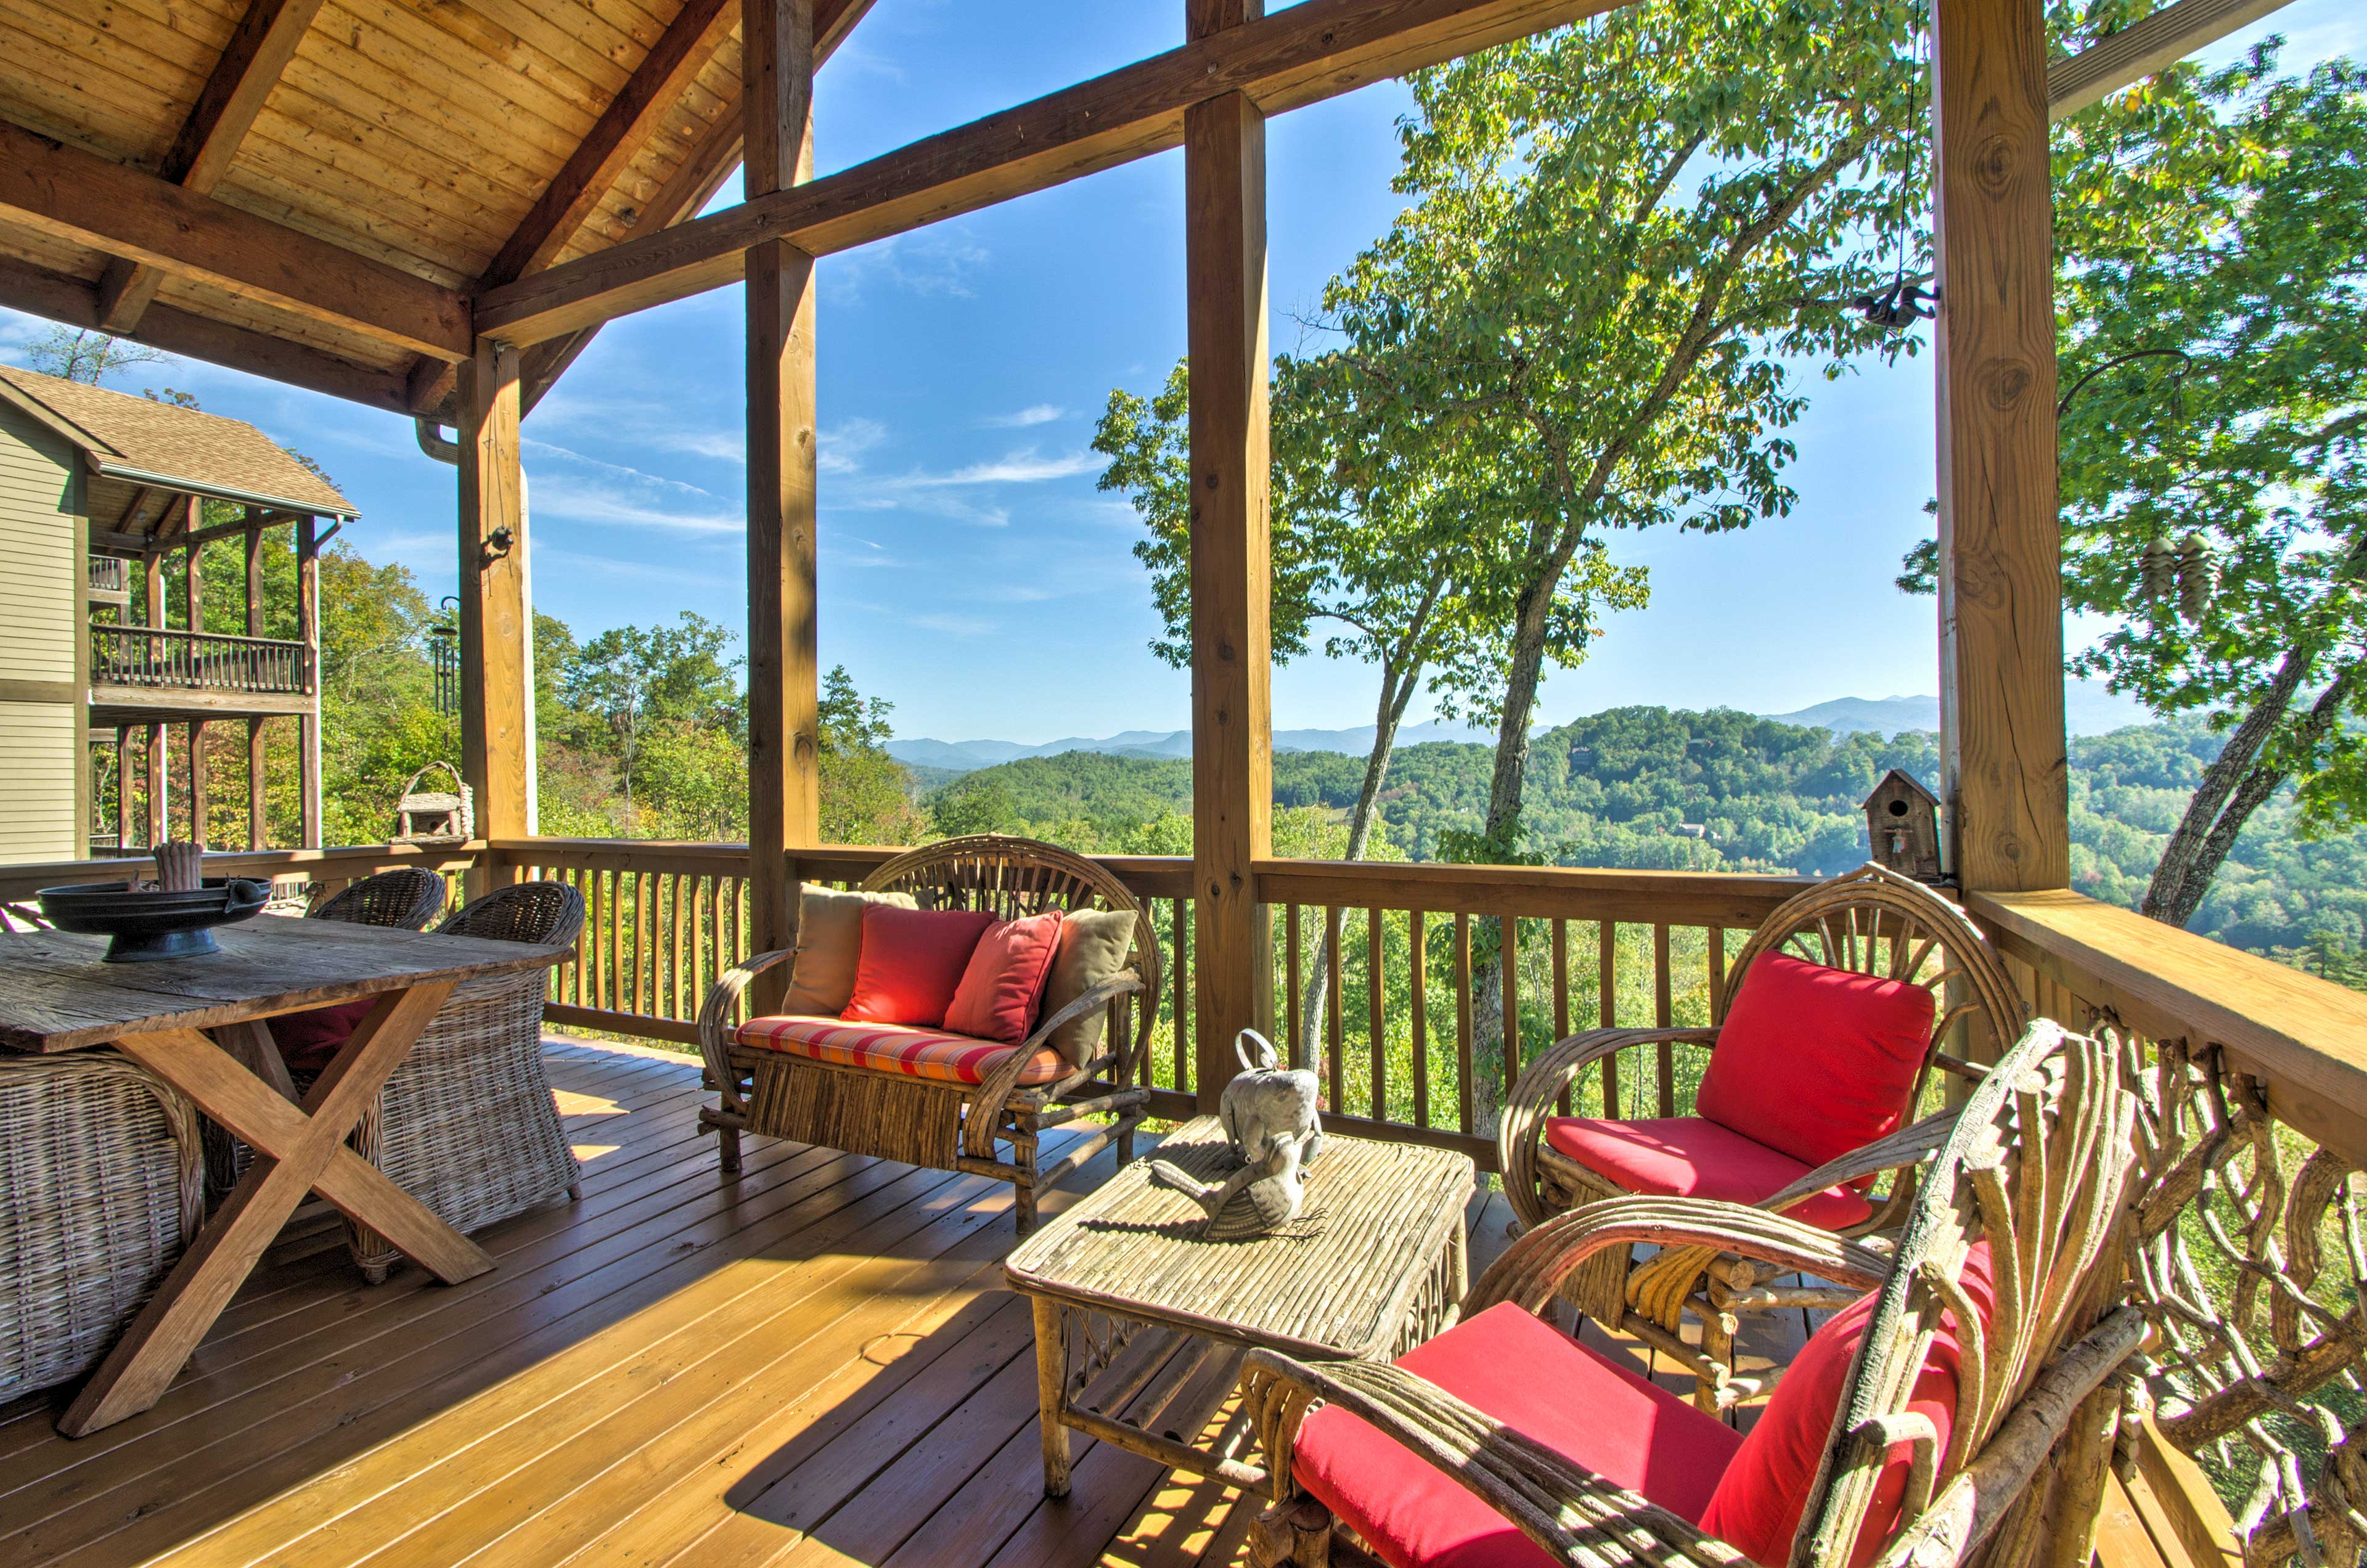 Enjoy the 30-mile vista view from the viewing deck!